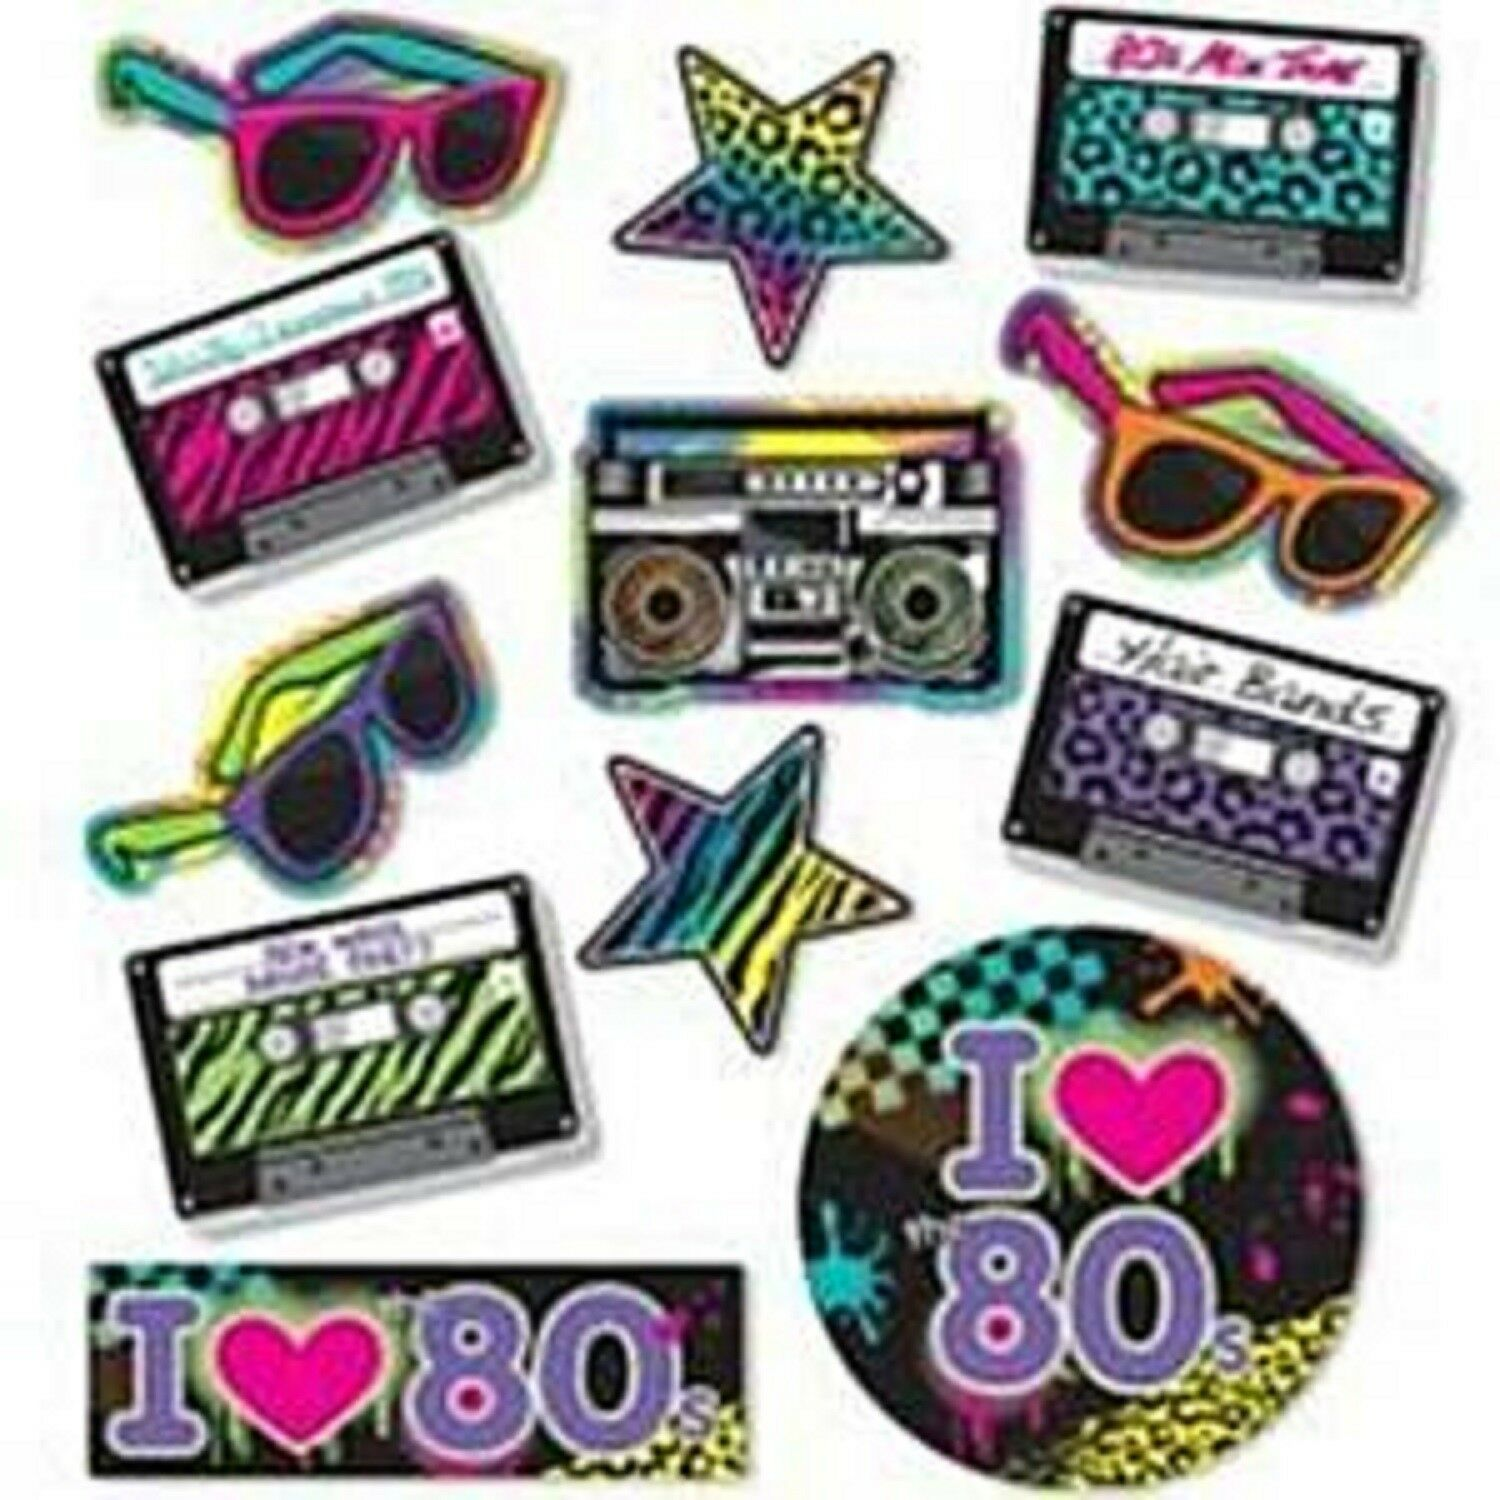 1980s 80/'s Eighties Party Paper Tableware Decorations Neon Patterned Plates